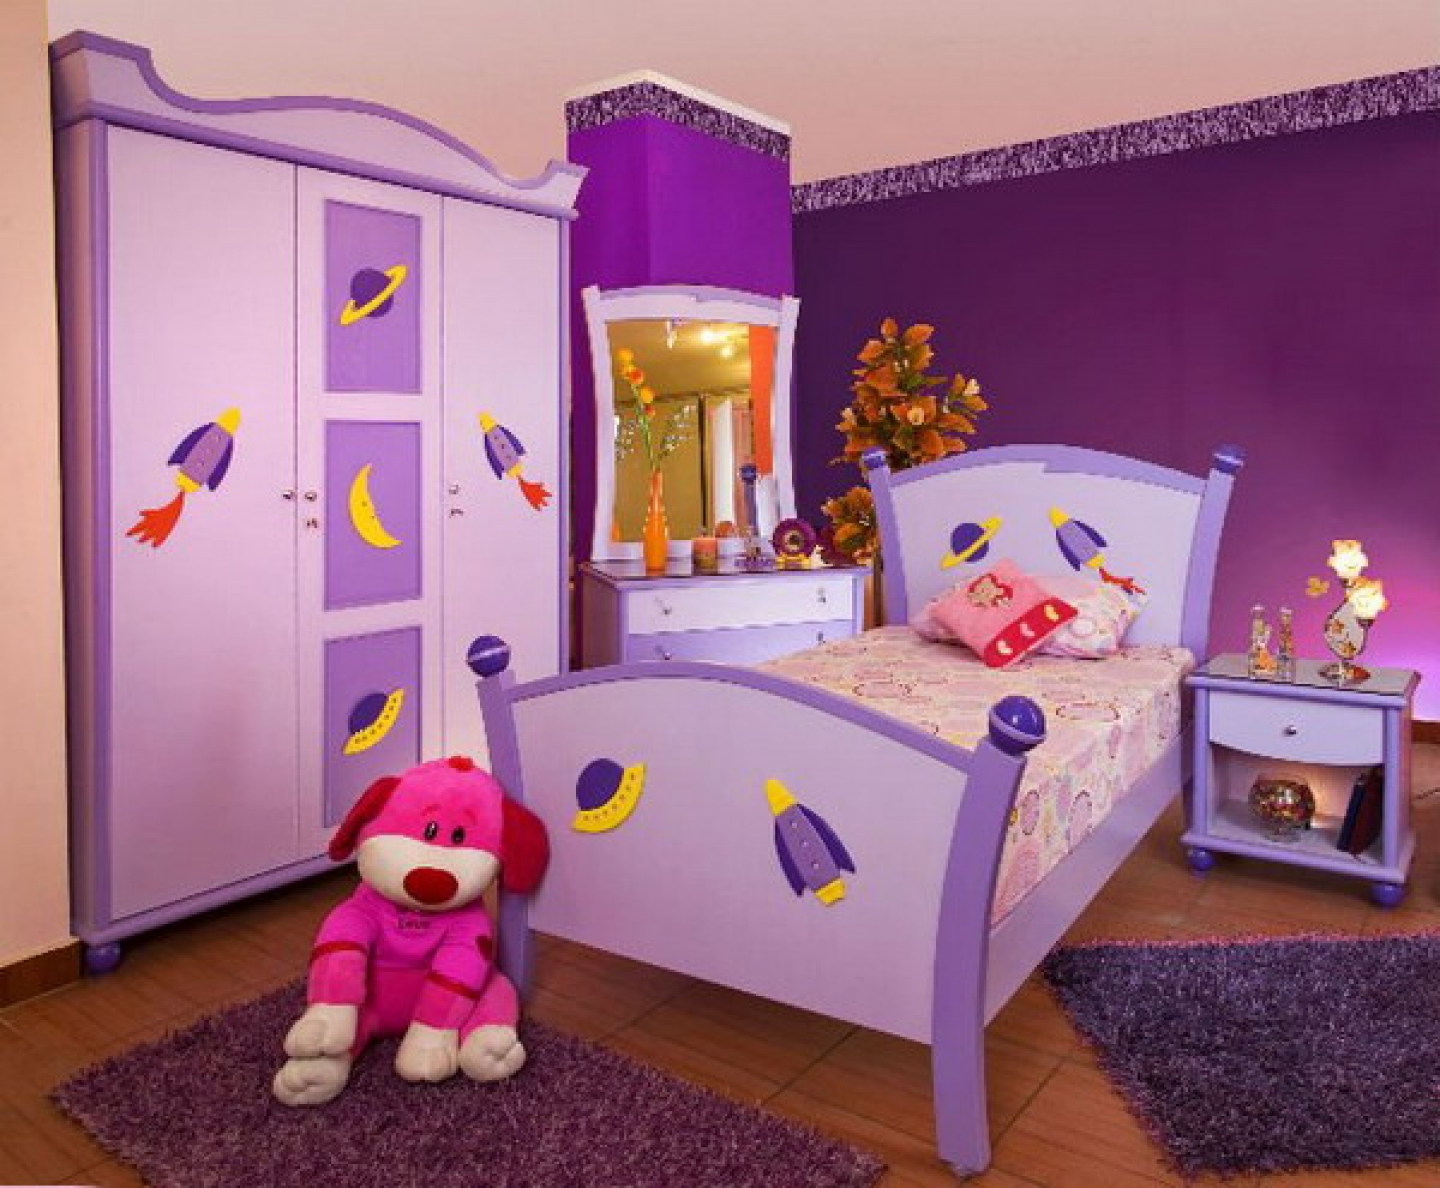 Interior Designs clipart childrens bedroom Ceiling Teen Decor Kids Simple